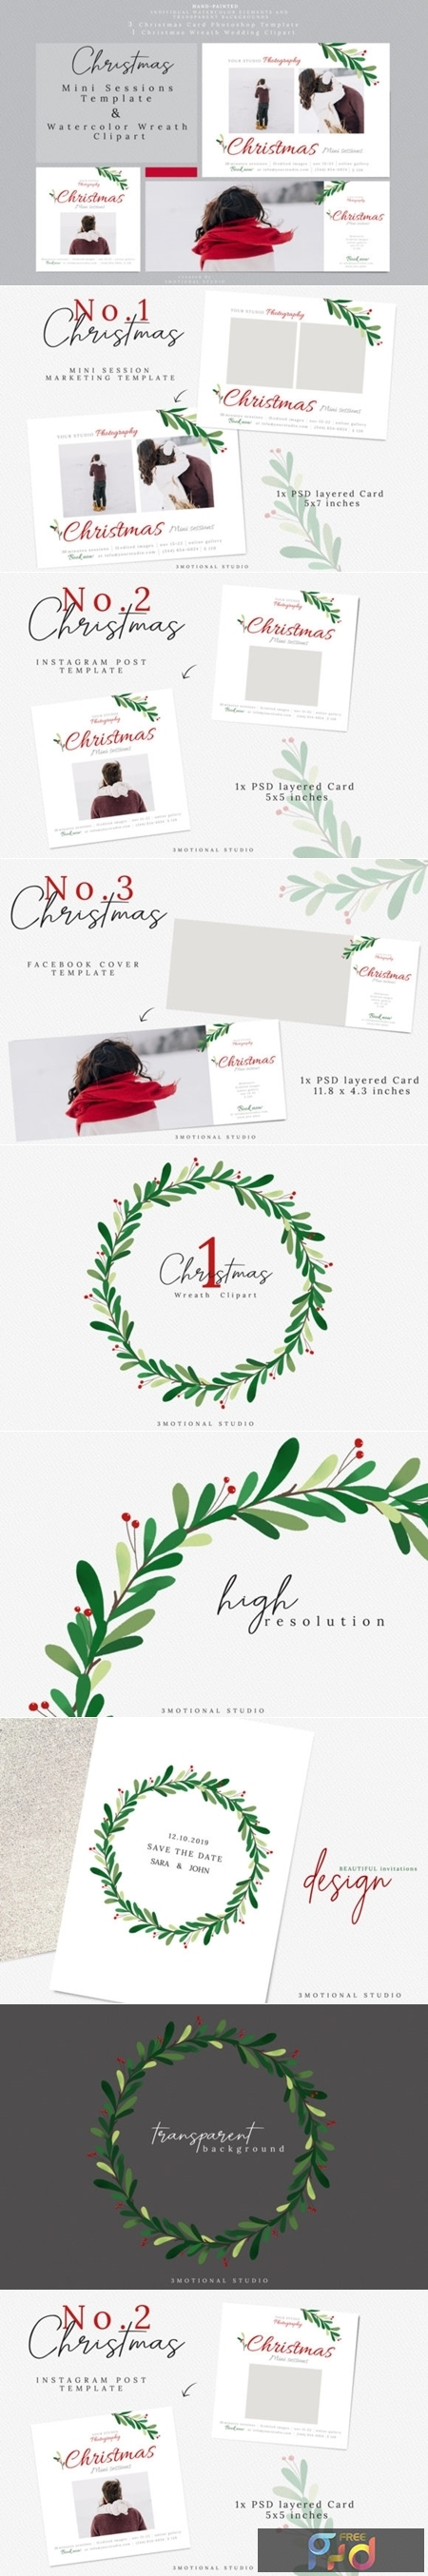 Christmas Mini Sessions Template 1992774 1